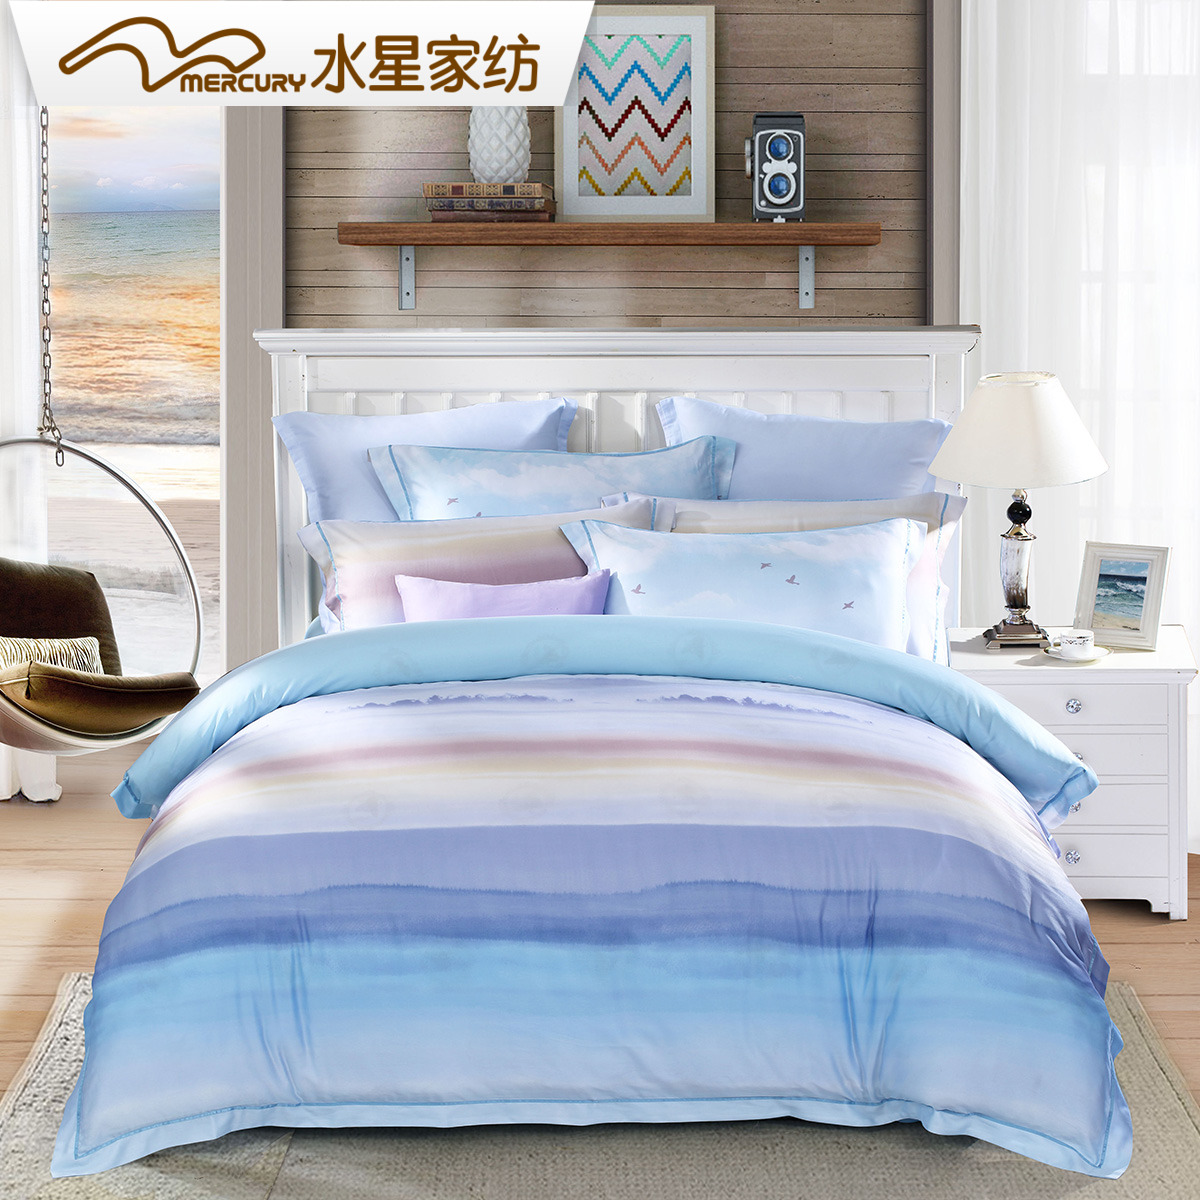 Mercury textile printing four pieces of wood Tencel Tencel linen quilt Jinxiu 1.8 meters 2017 new bed